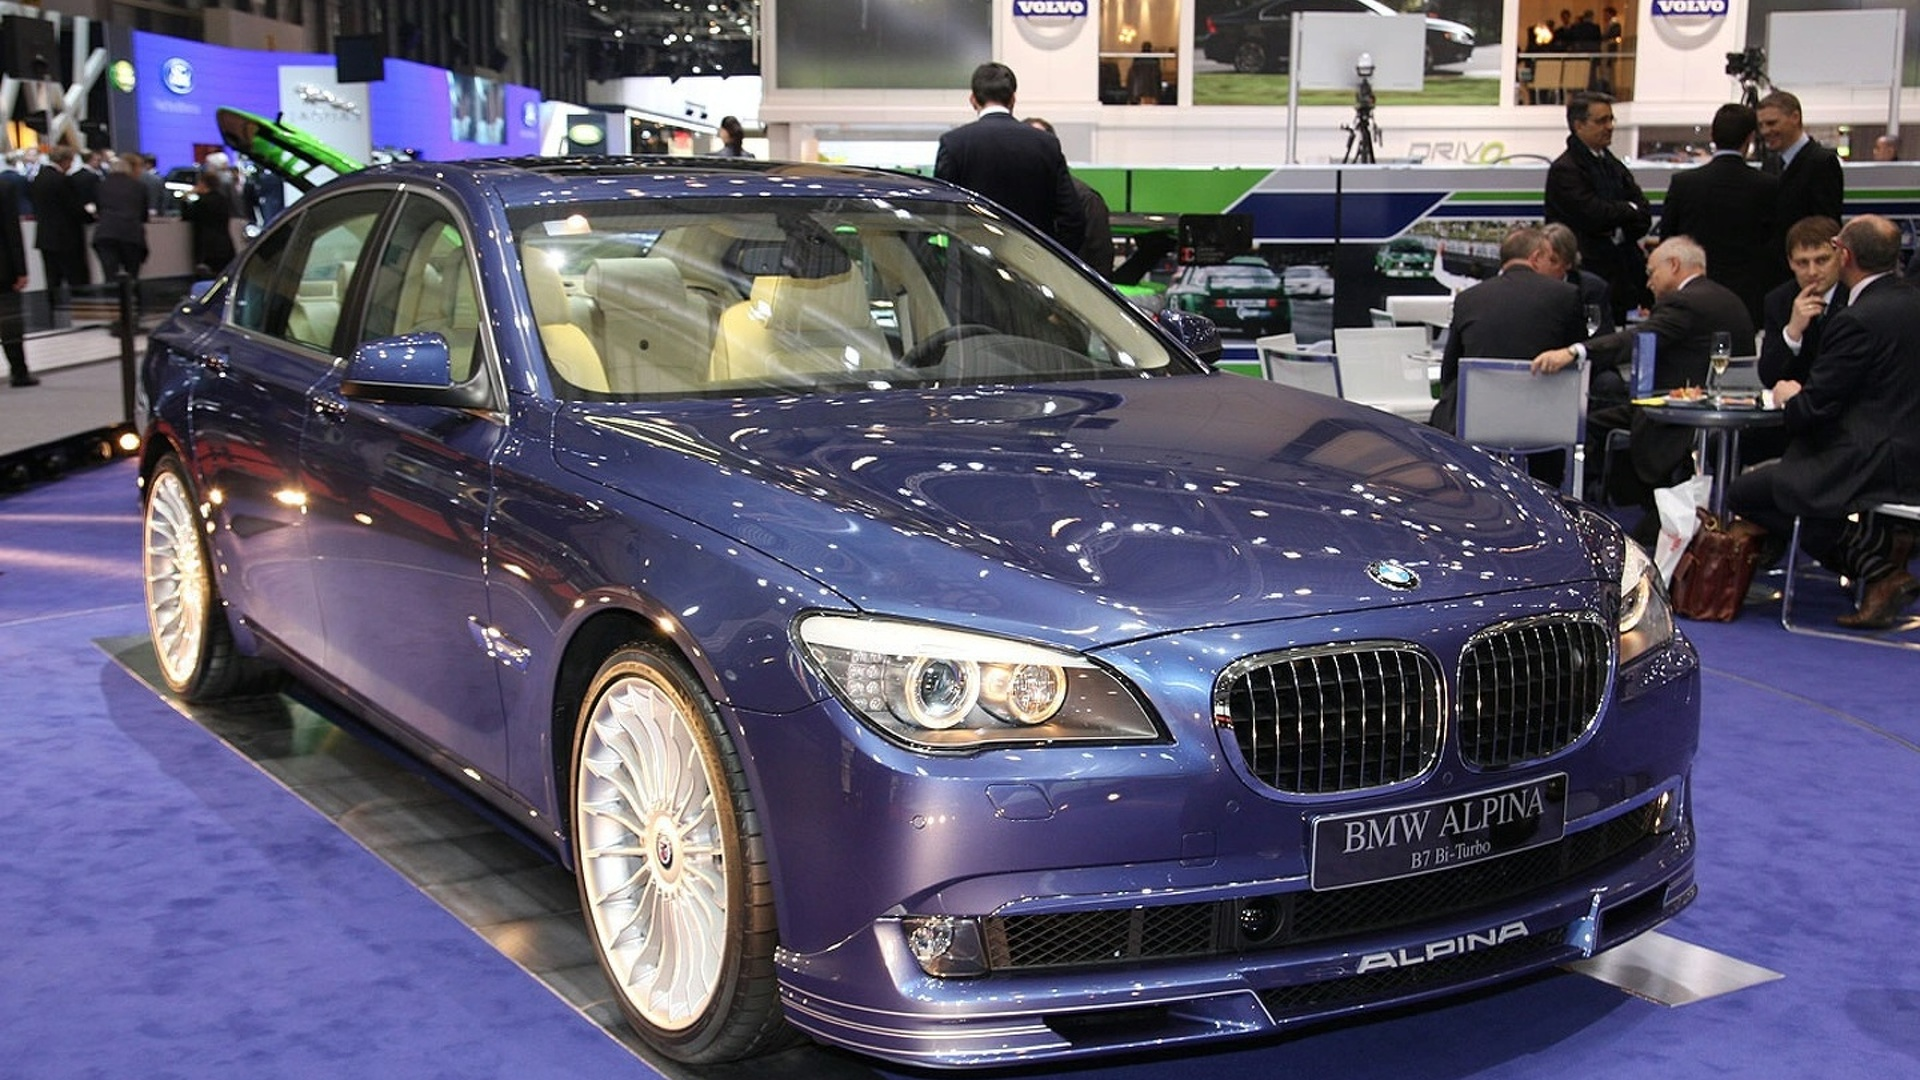 Alpina B7 Biturbo Details Released at Geneva Motor Show